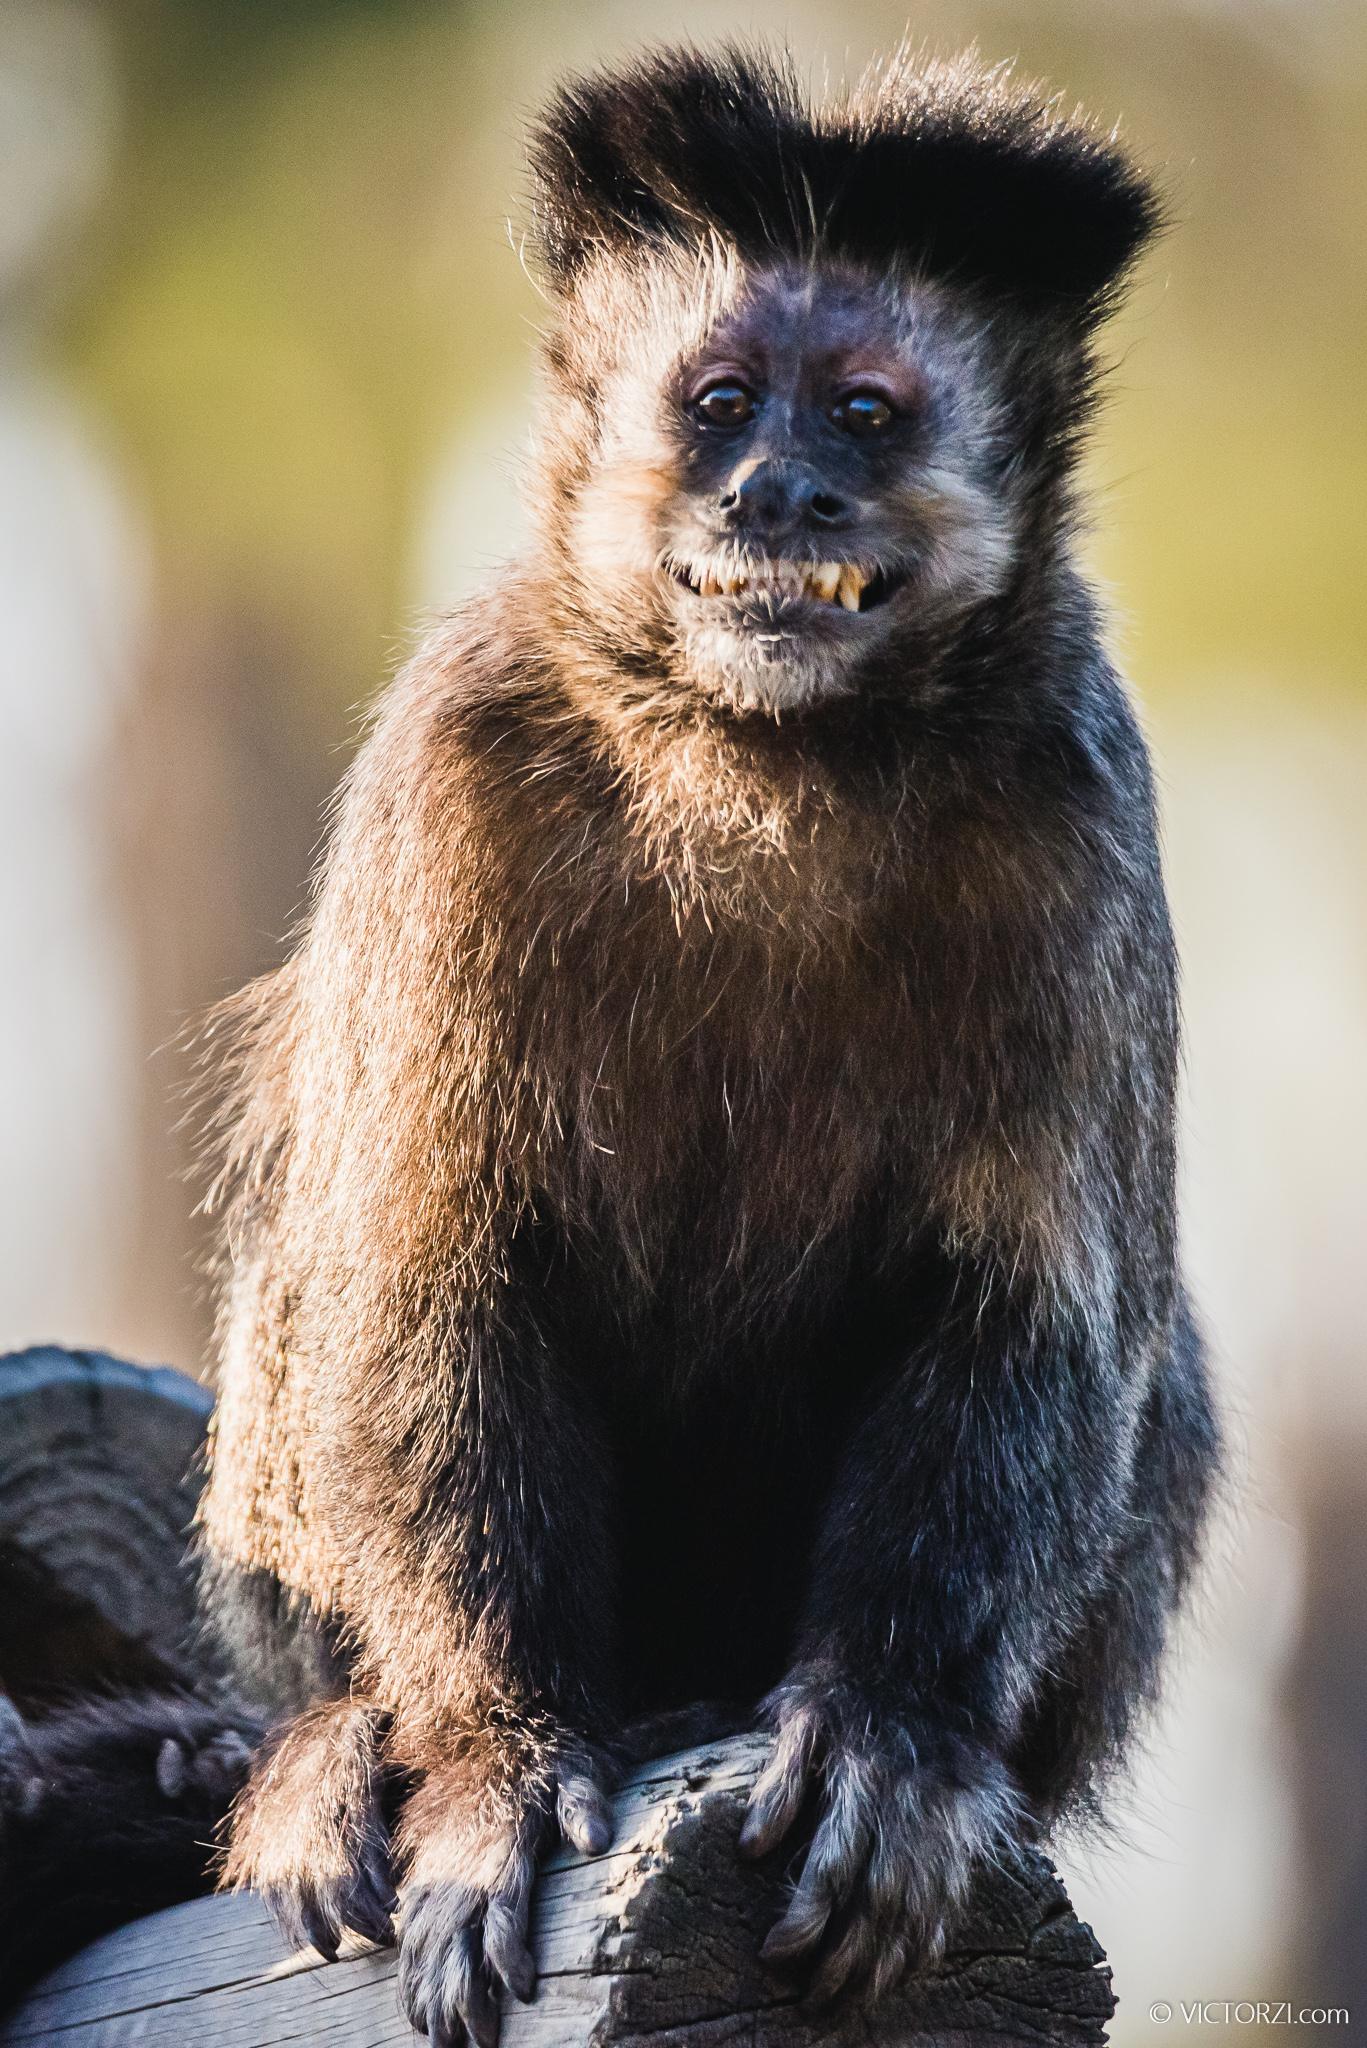 20191222 - Monkeys Sanctuary - PreWorksh